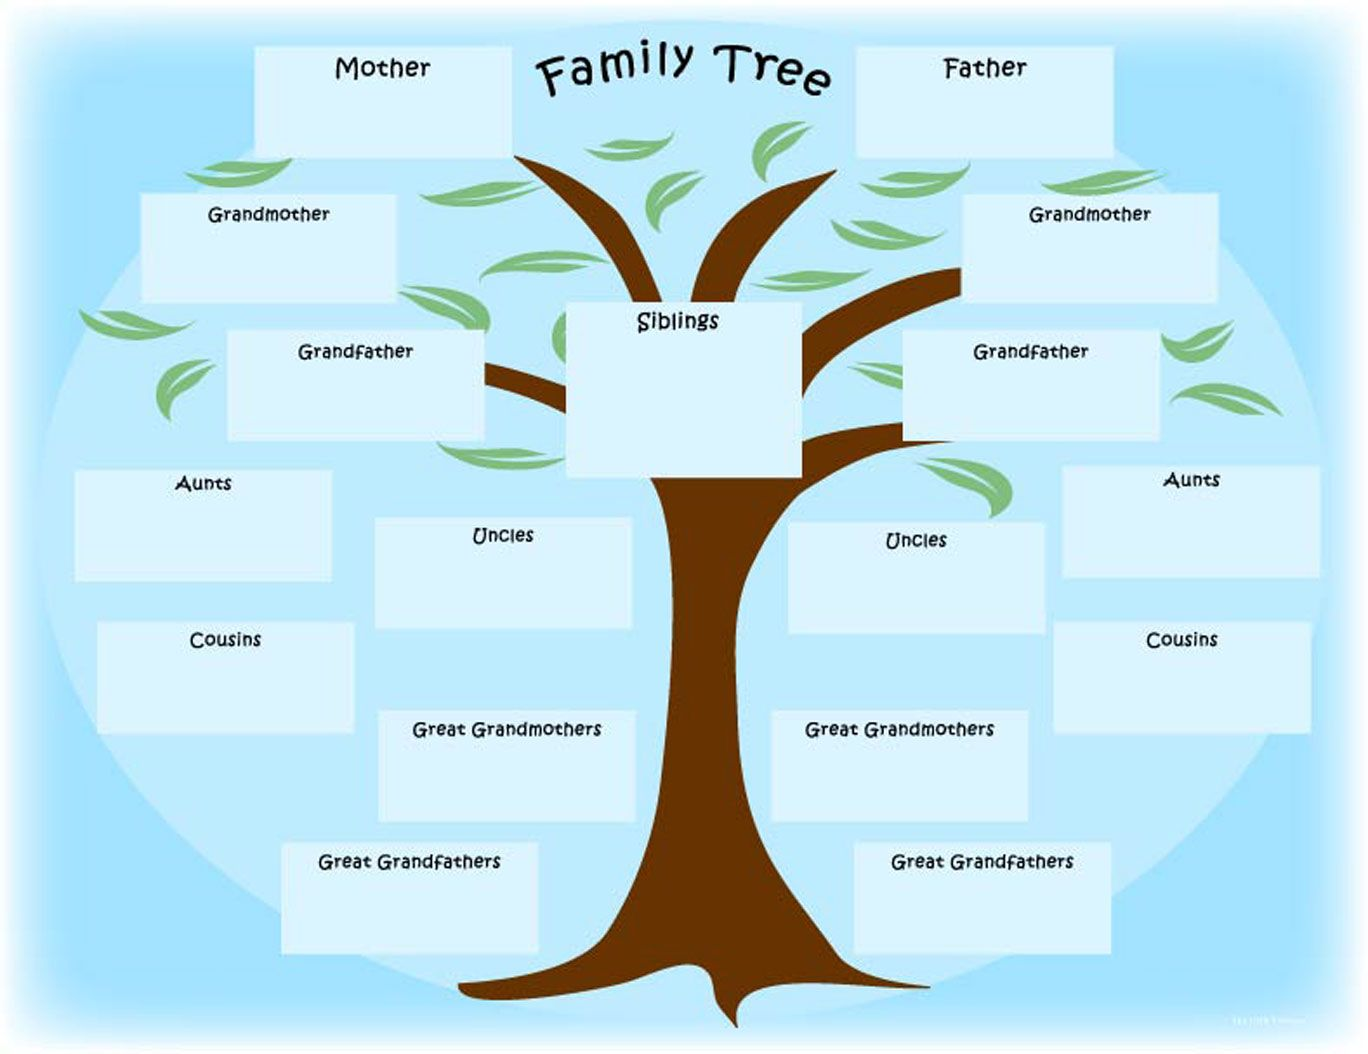 Free Worksheet Family Tree Worksheet For Kids 1000 ideas about family tree templates on pinterest newspaper activity the year i was born printable template